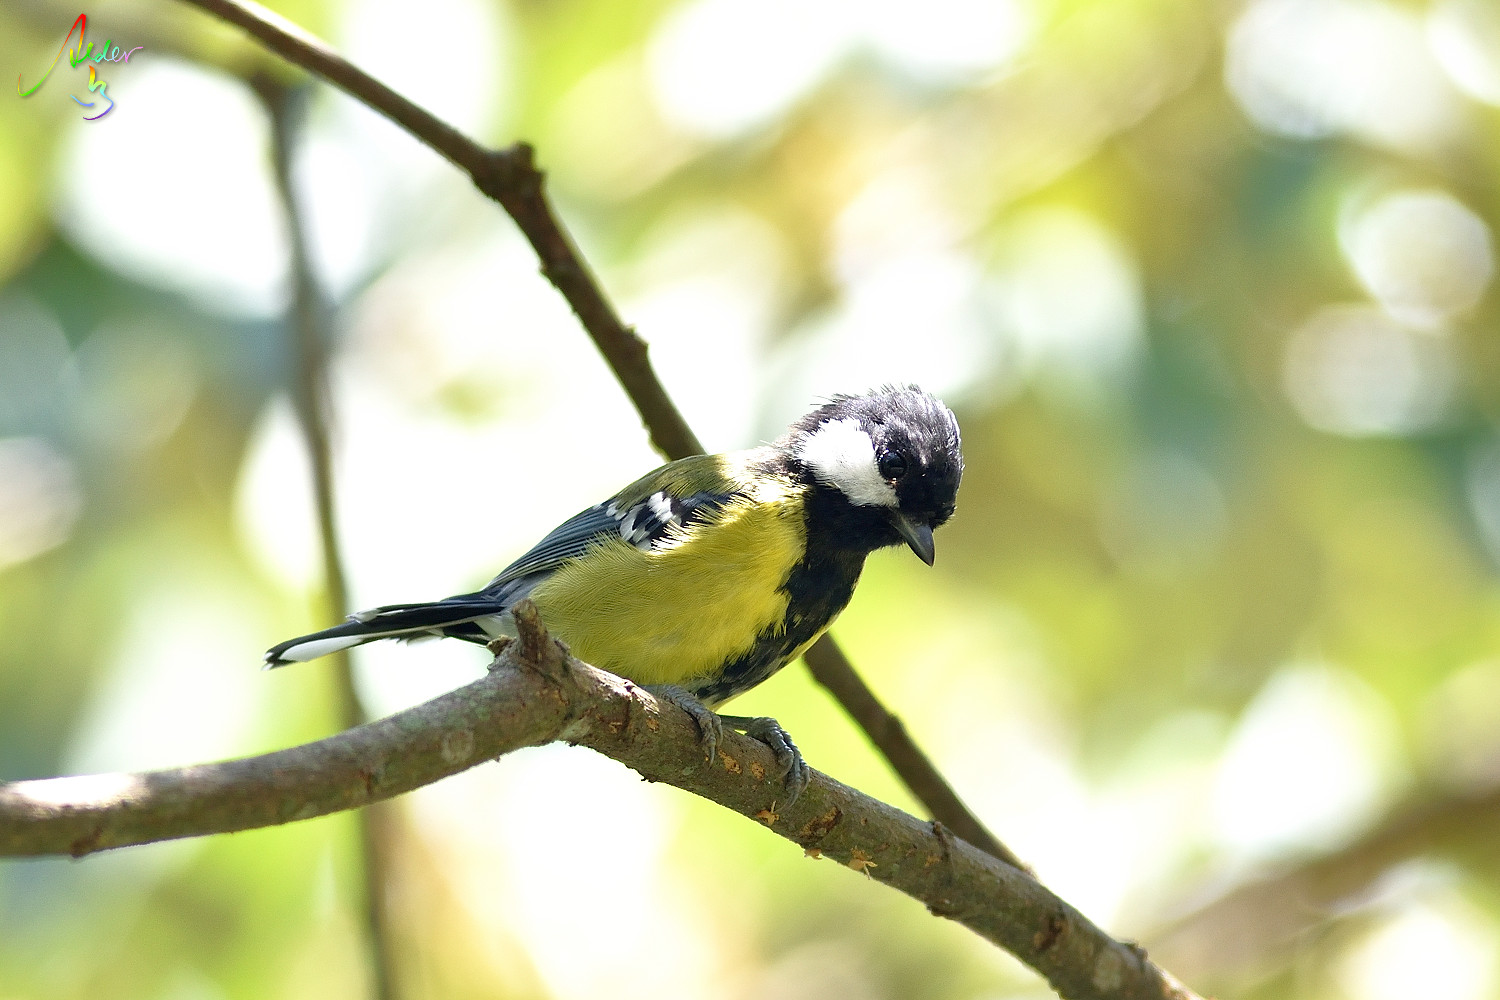 Green-backed_Tit_7762